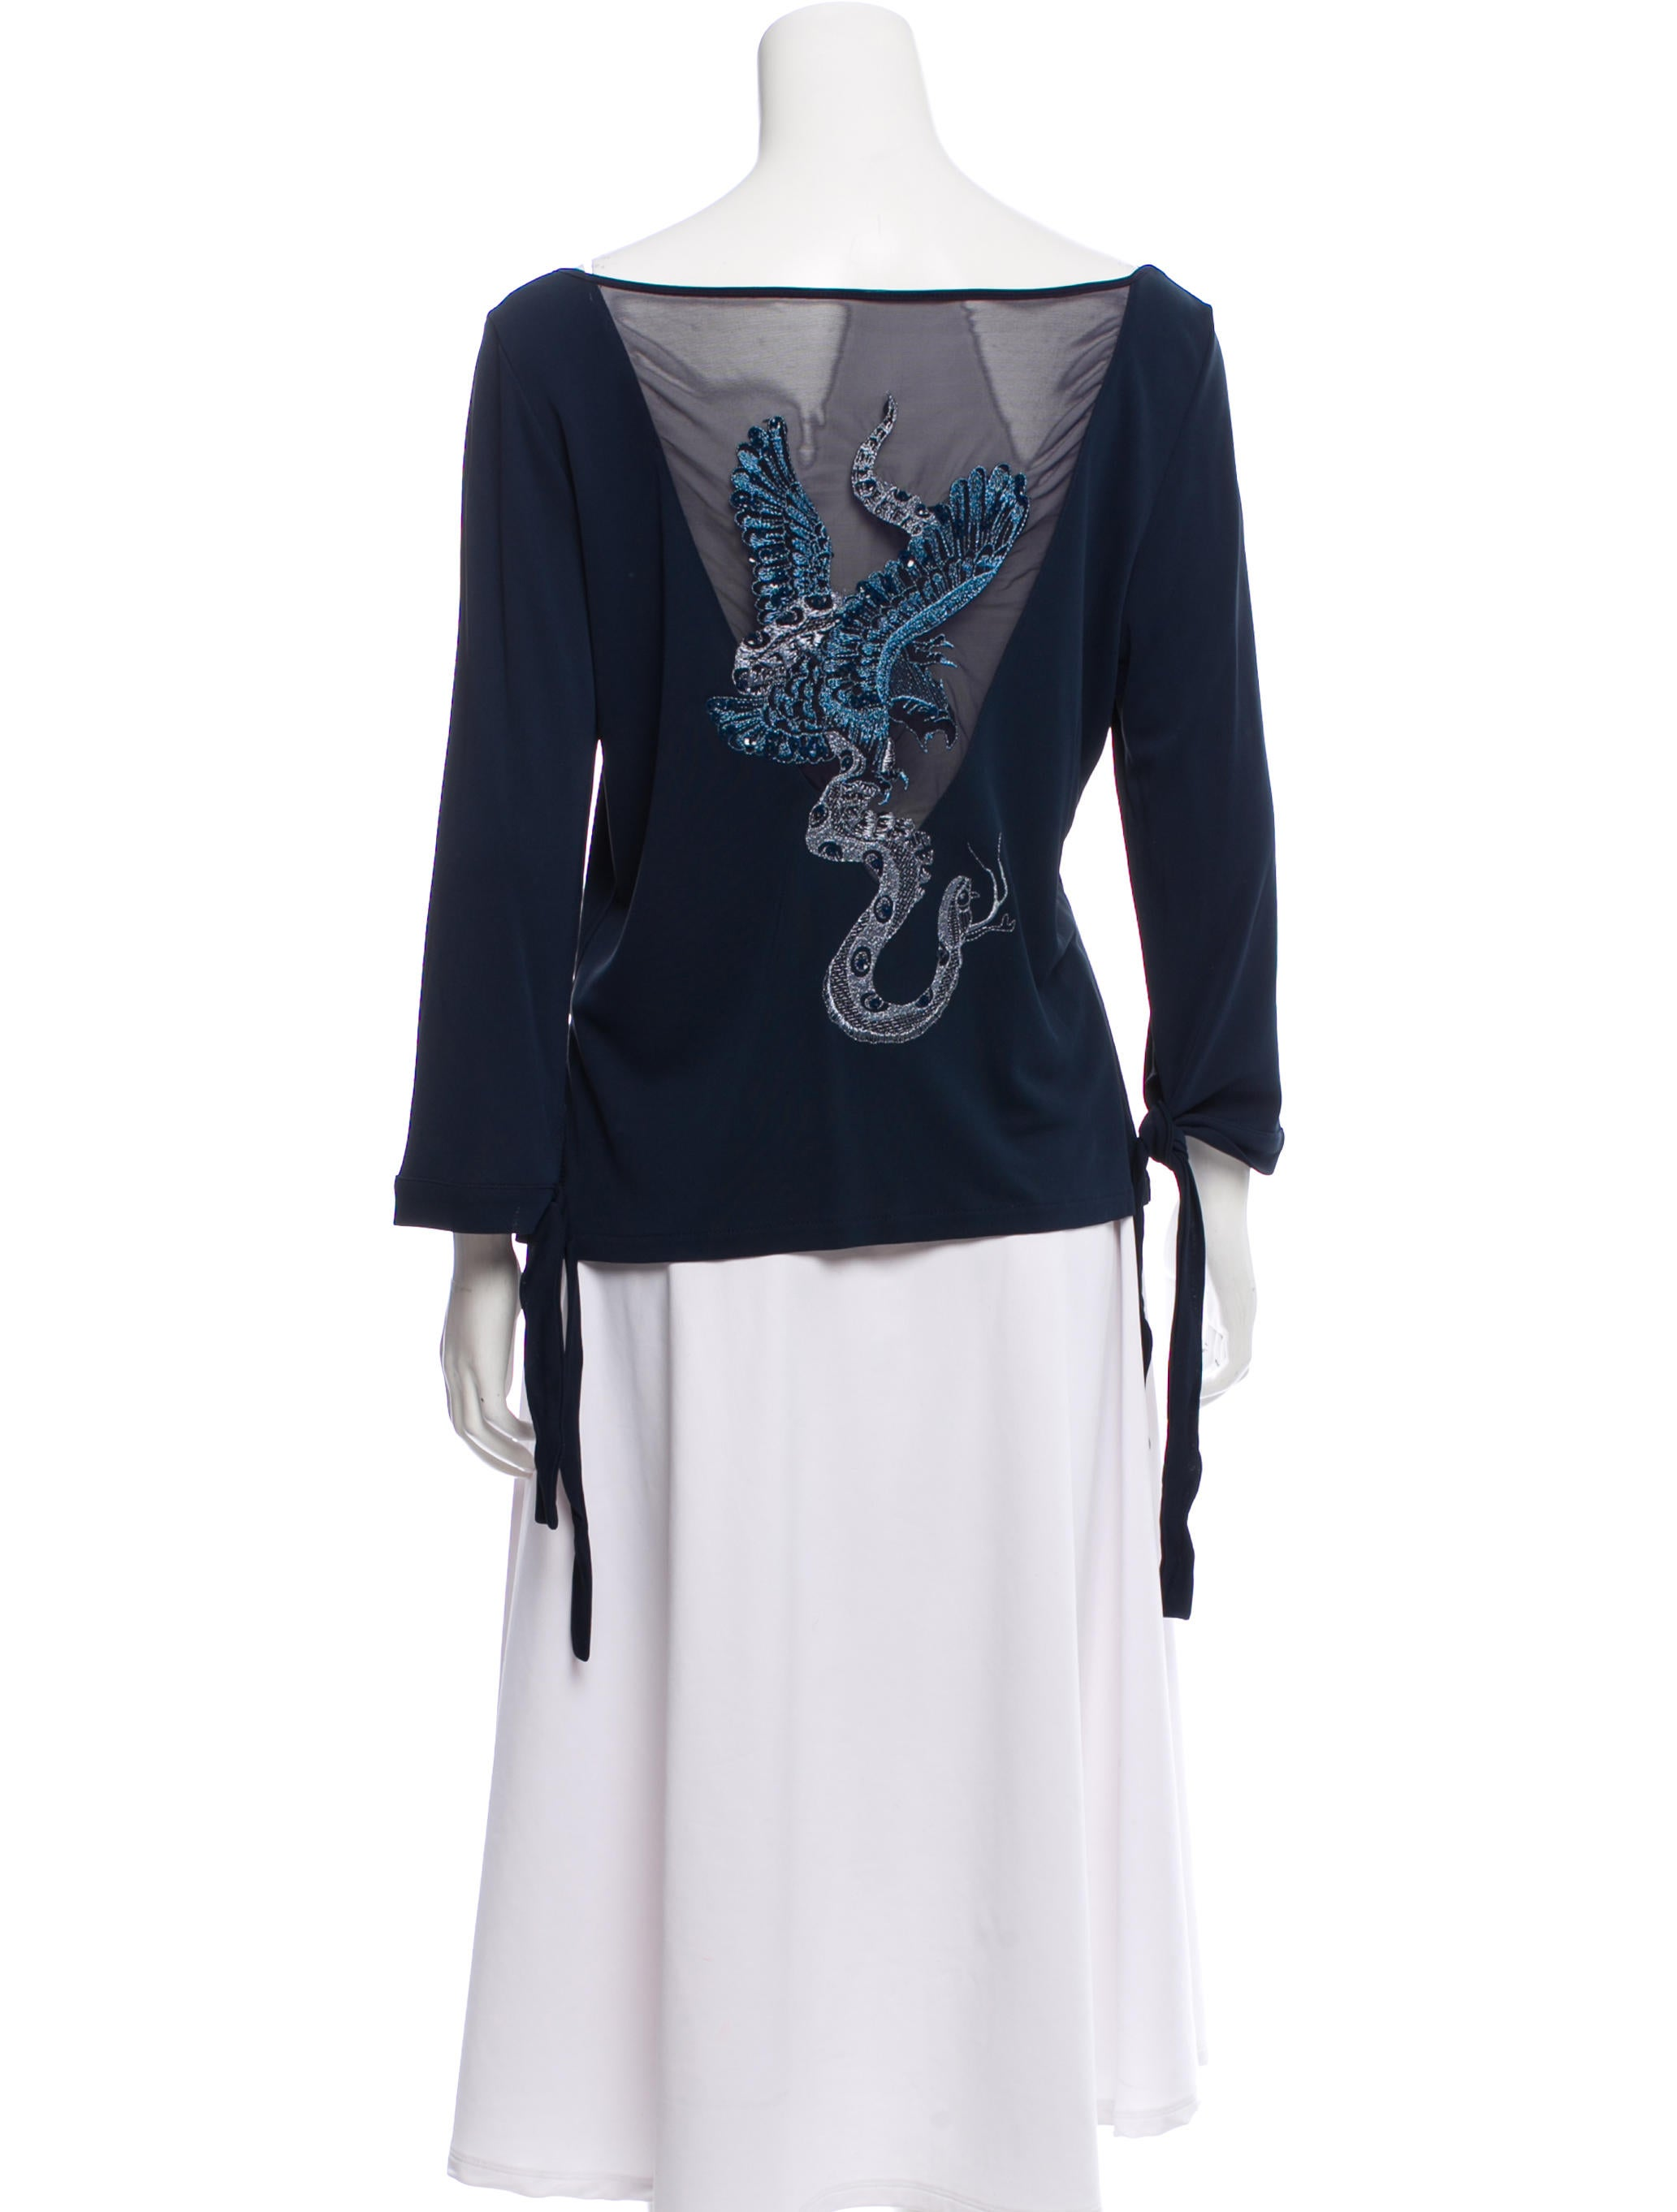 finest selection 89d75 386d9 Class Roberto Cavalli Long Sleeve Embroidered Top